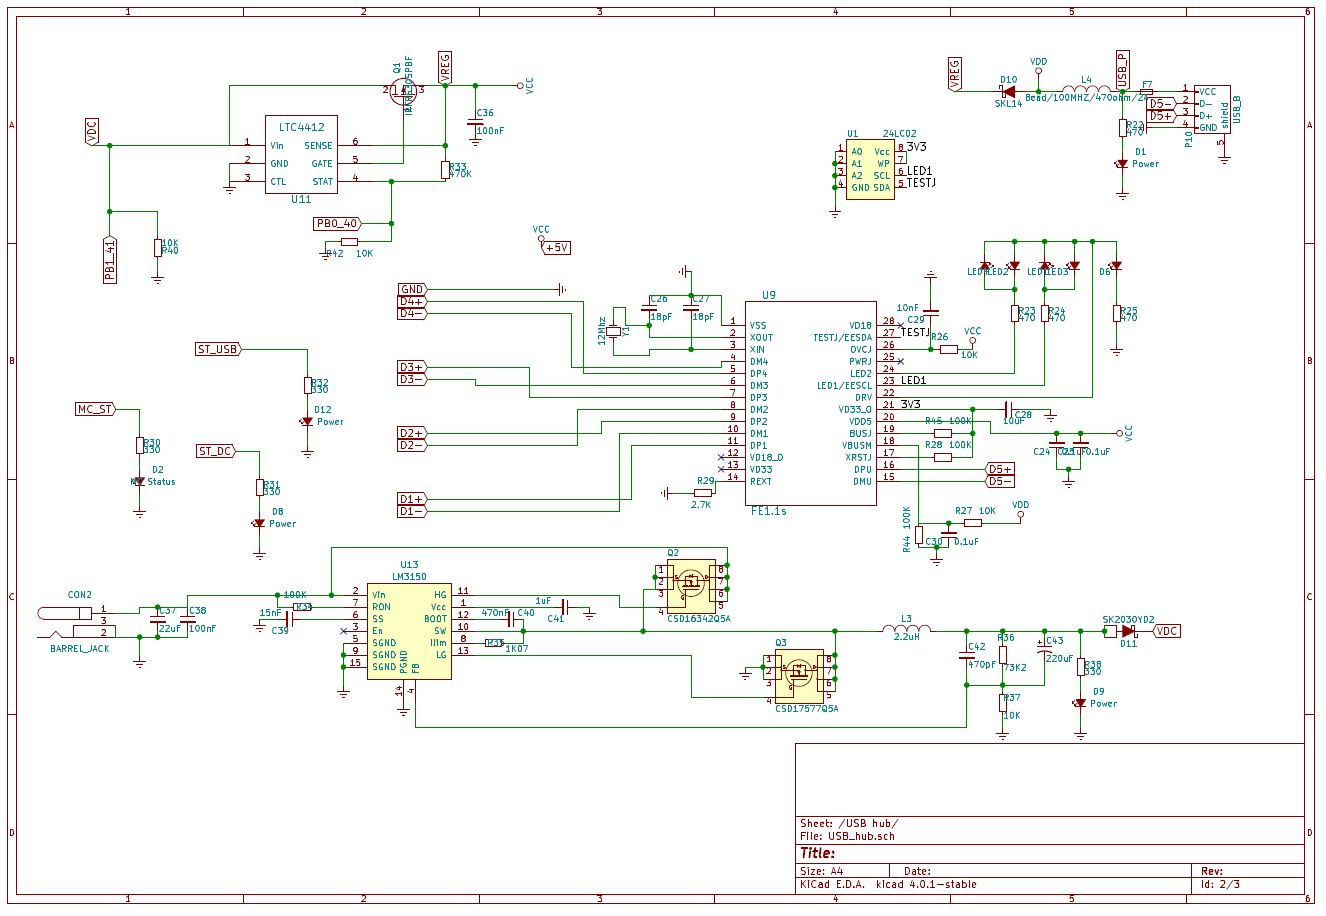 Usb Schematic | Wiring Diagram - New Usb Port Wiring Diagram